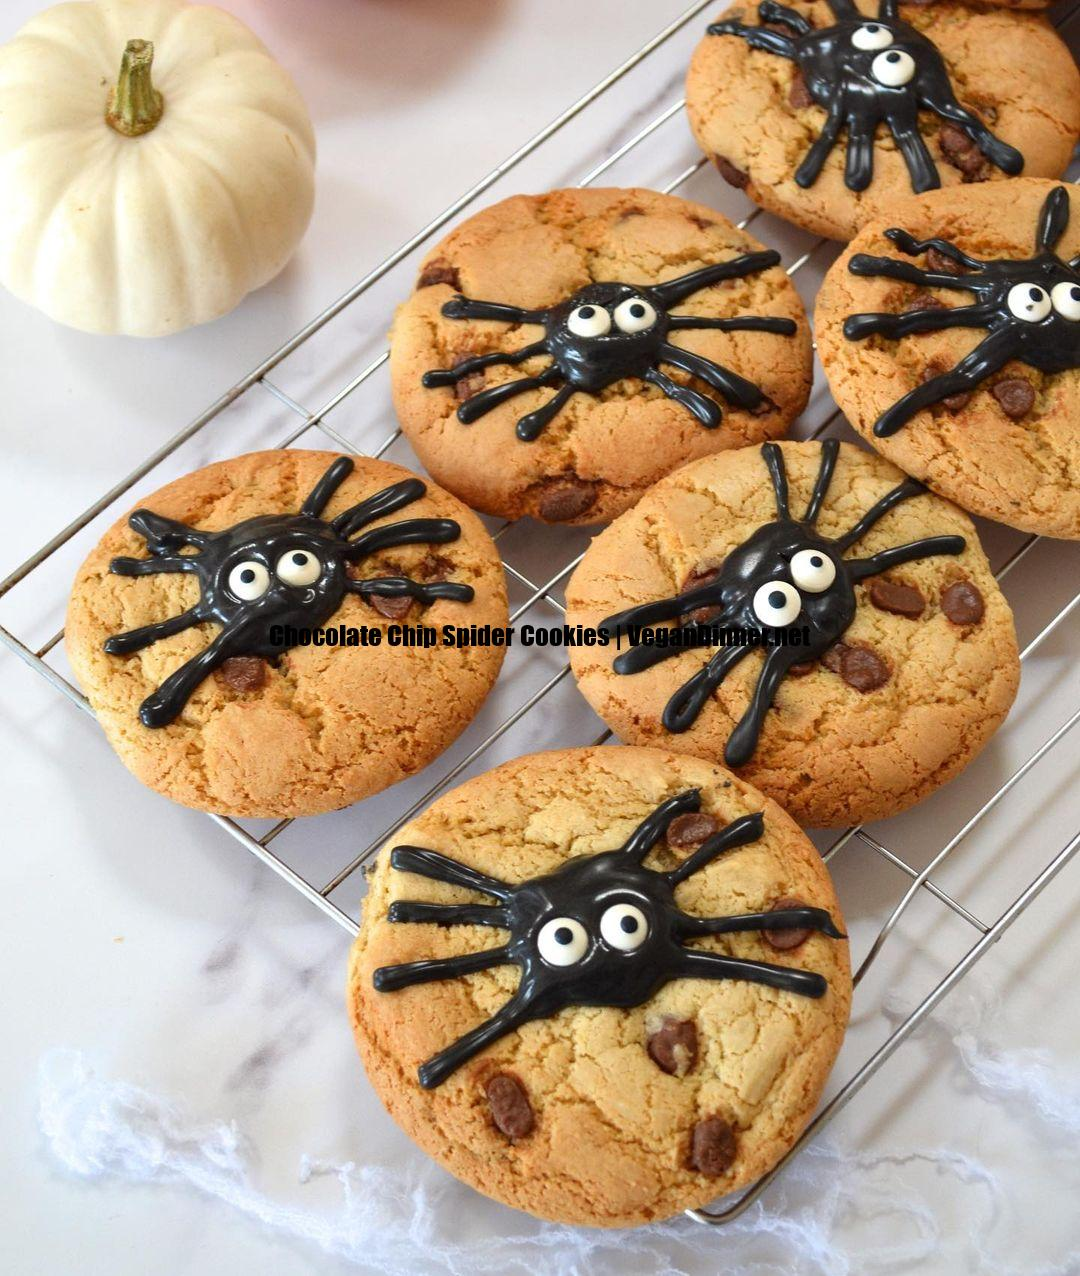 chocolate chip spider cookies multip img fa